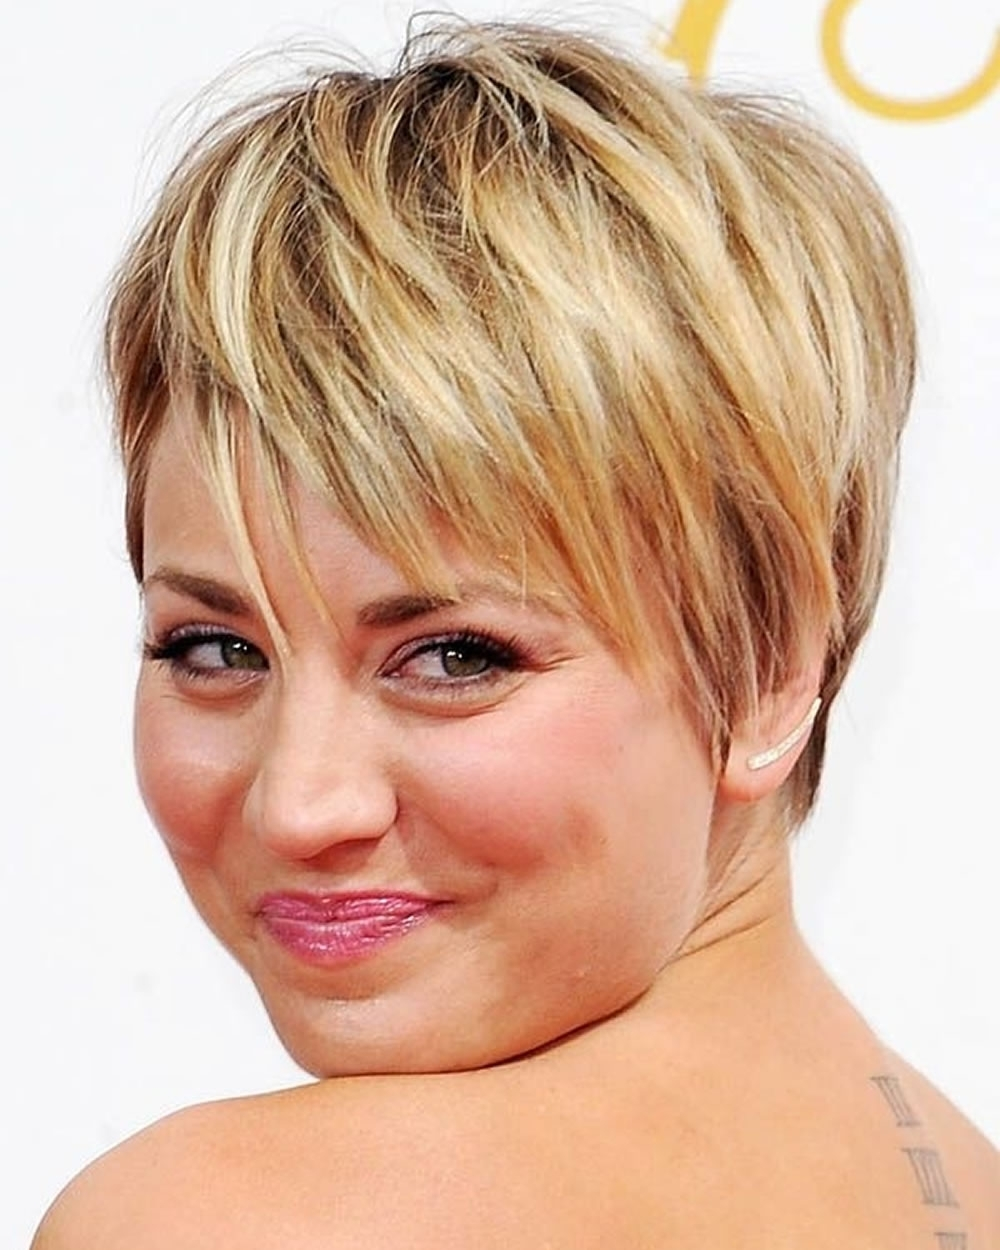 Hairstyles Fine Hair For Round Face 2018 2019 Regarding Most Recent Pixie Hairstyles For Thin Hair (View 10 of 15)